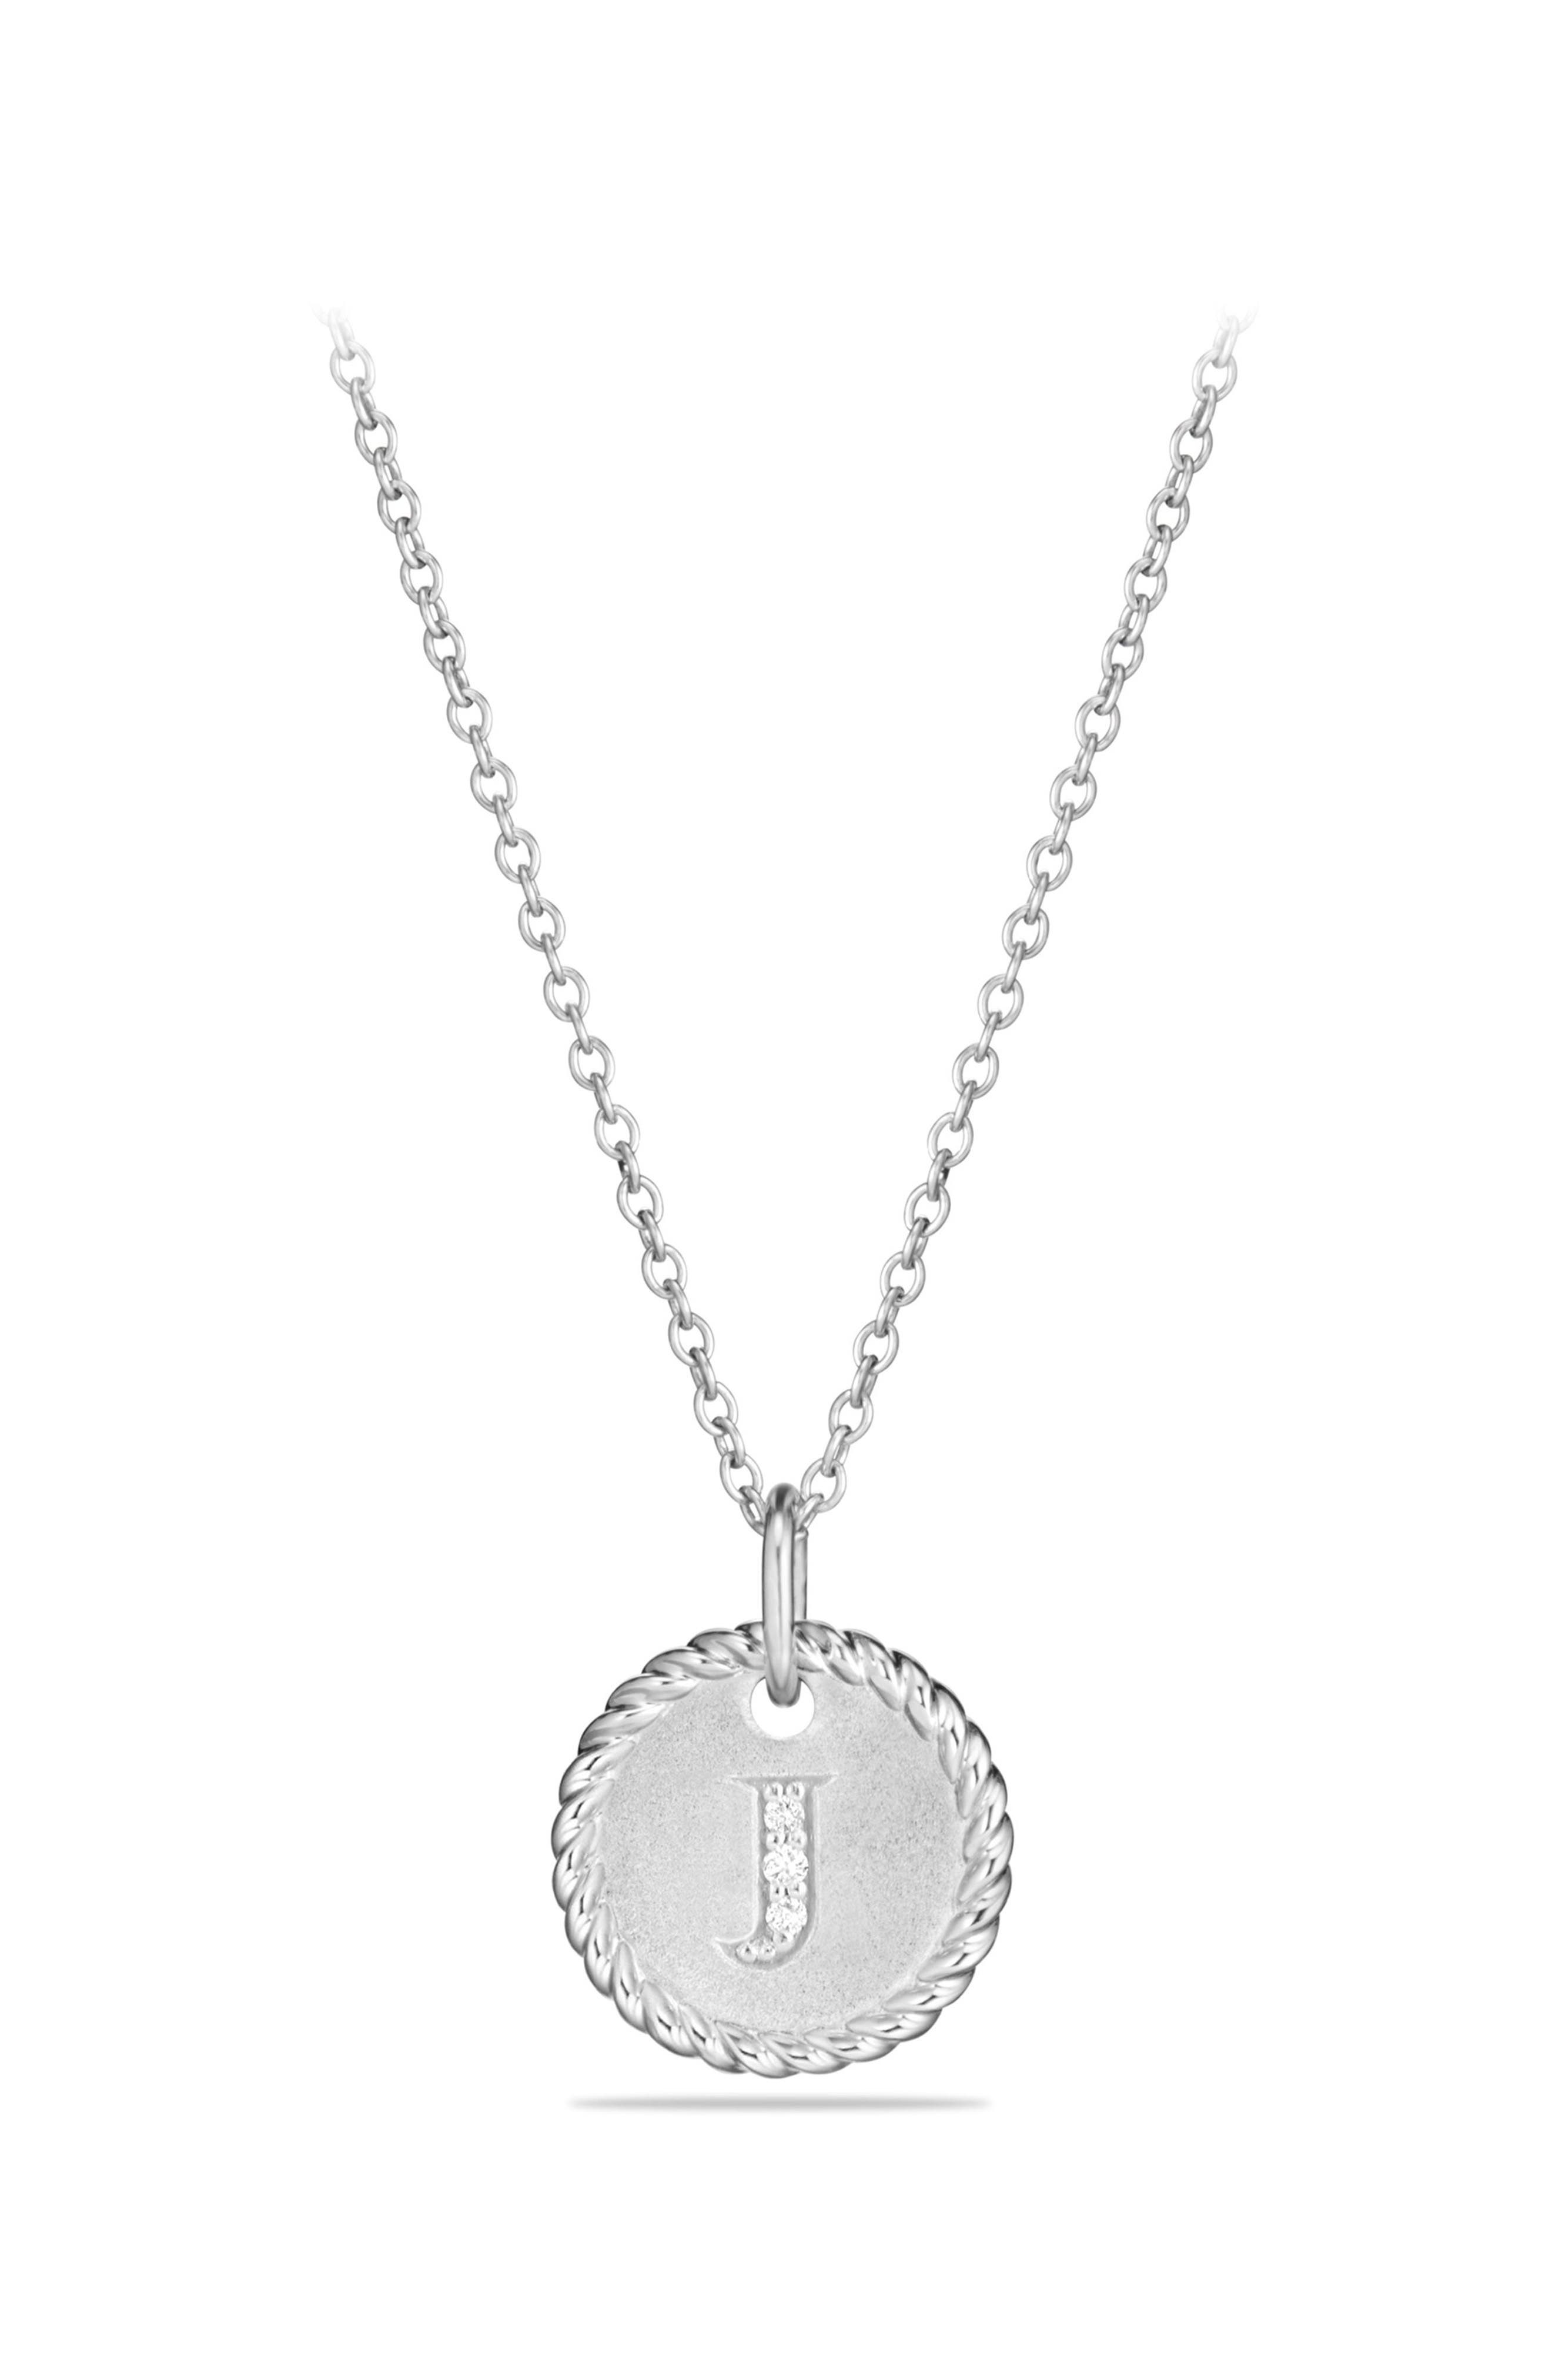 Initial Charm Necklace with Diamonds in 18K White Gold,                             Main thumbnail 1, color,                             040